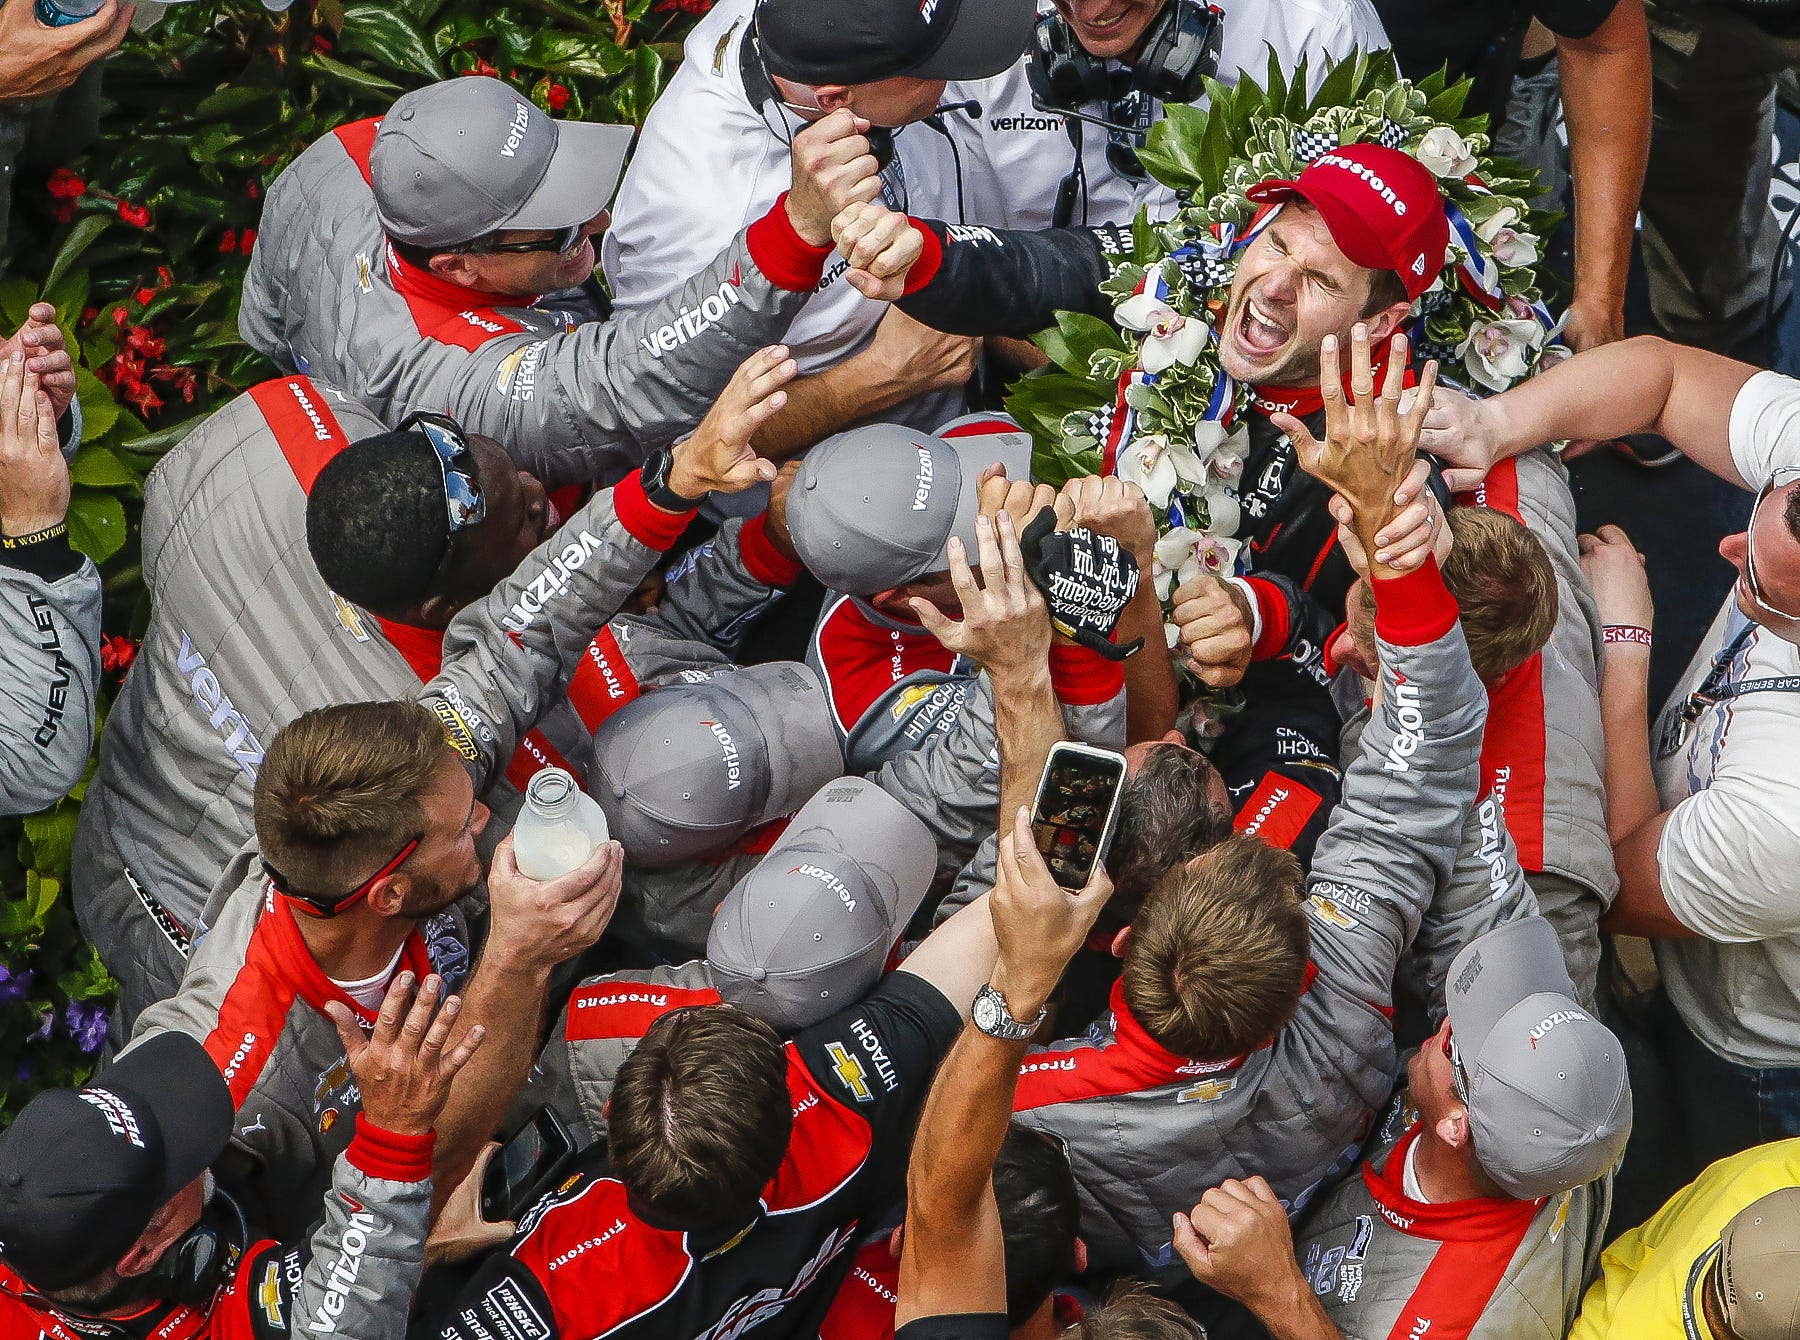 Team Penske IndyCar driver Will Power (12) celebrates in Victory Lane after winning the 102nd running of the Indianapolis 500 at Indianapolis Motor Speedway on Sunday, May 27, 2018.